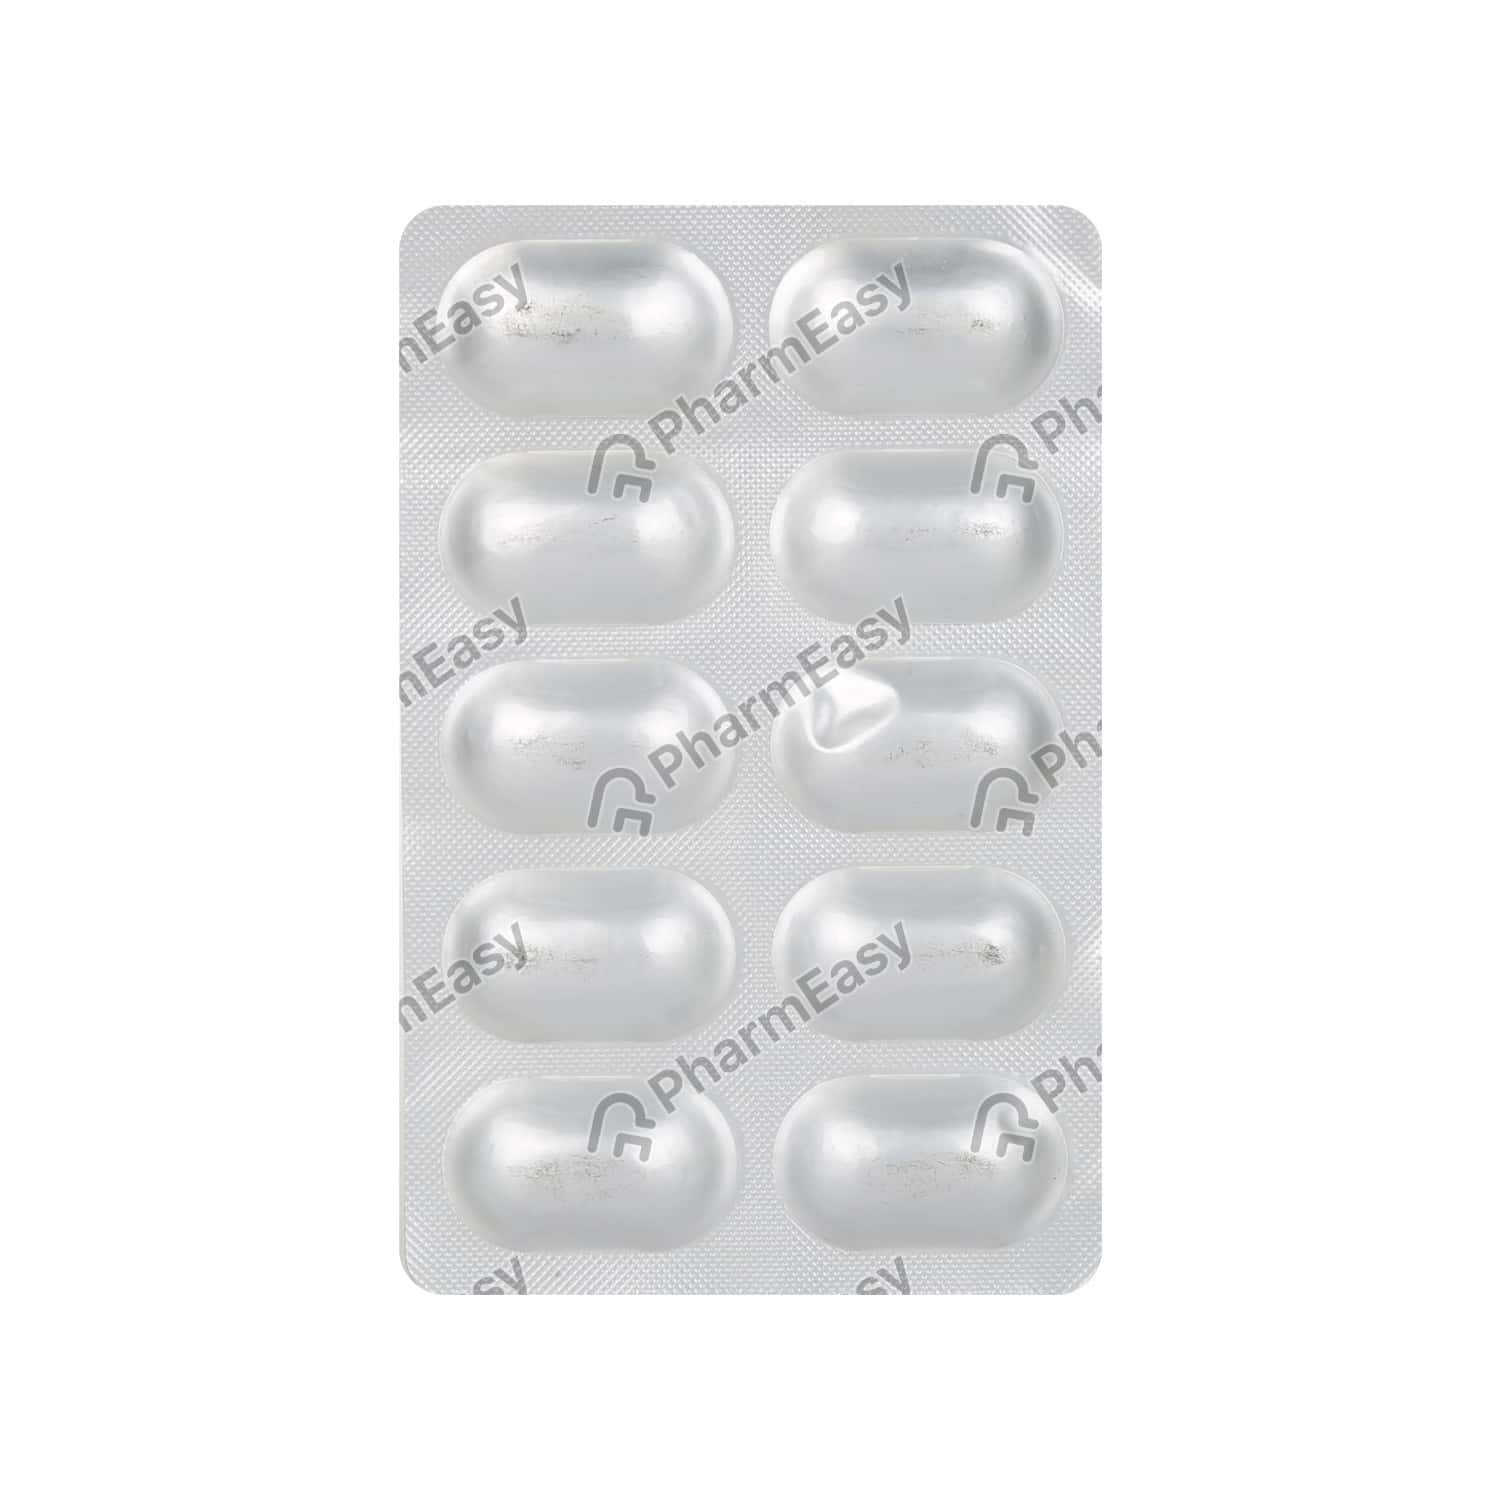 Fightox 625mg Strip Of 10 Tablets